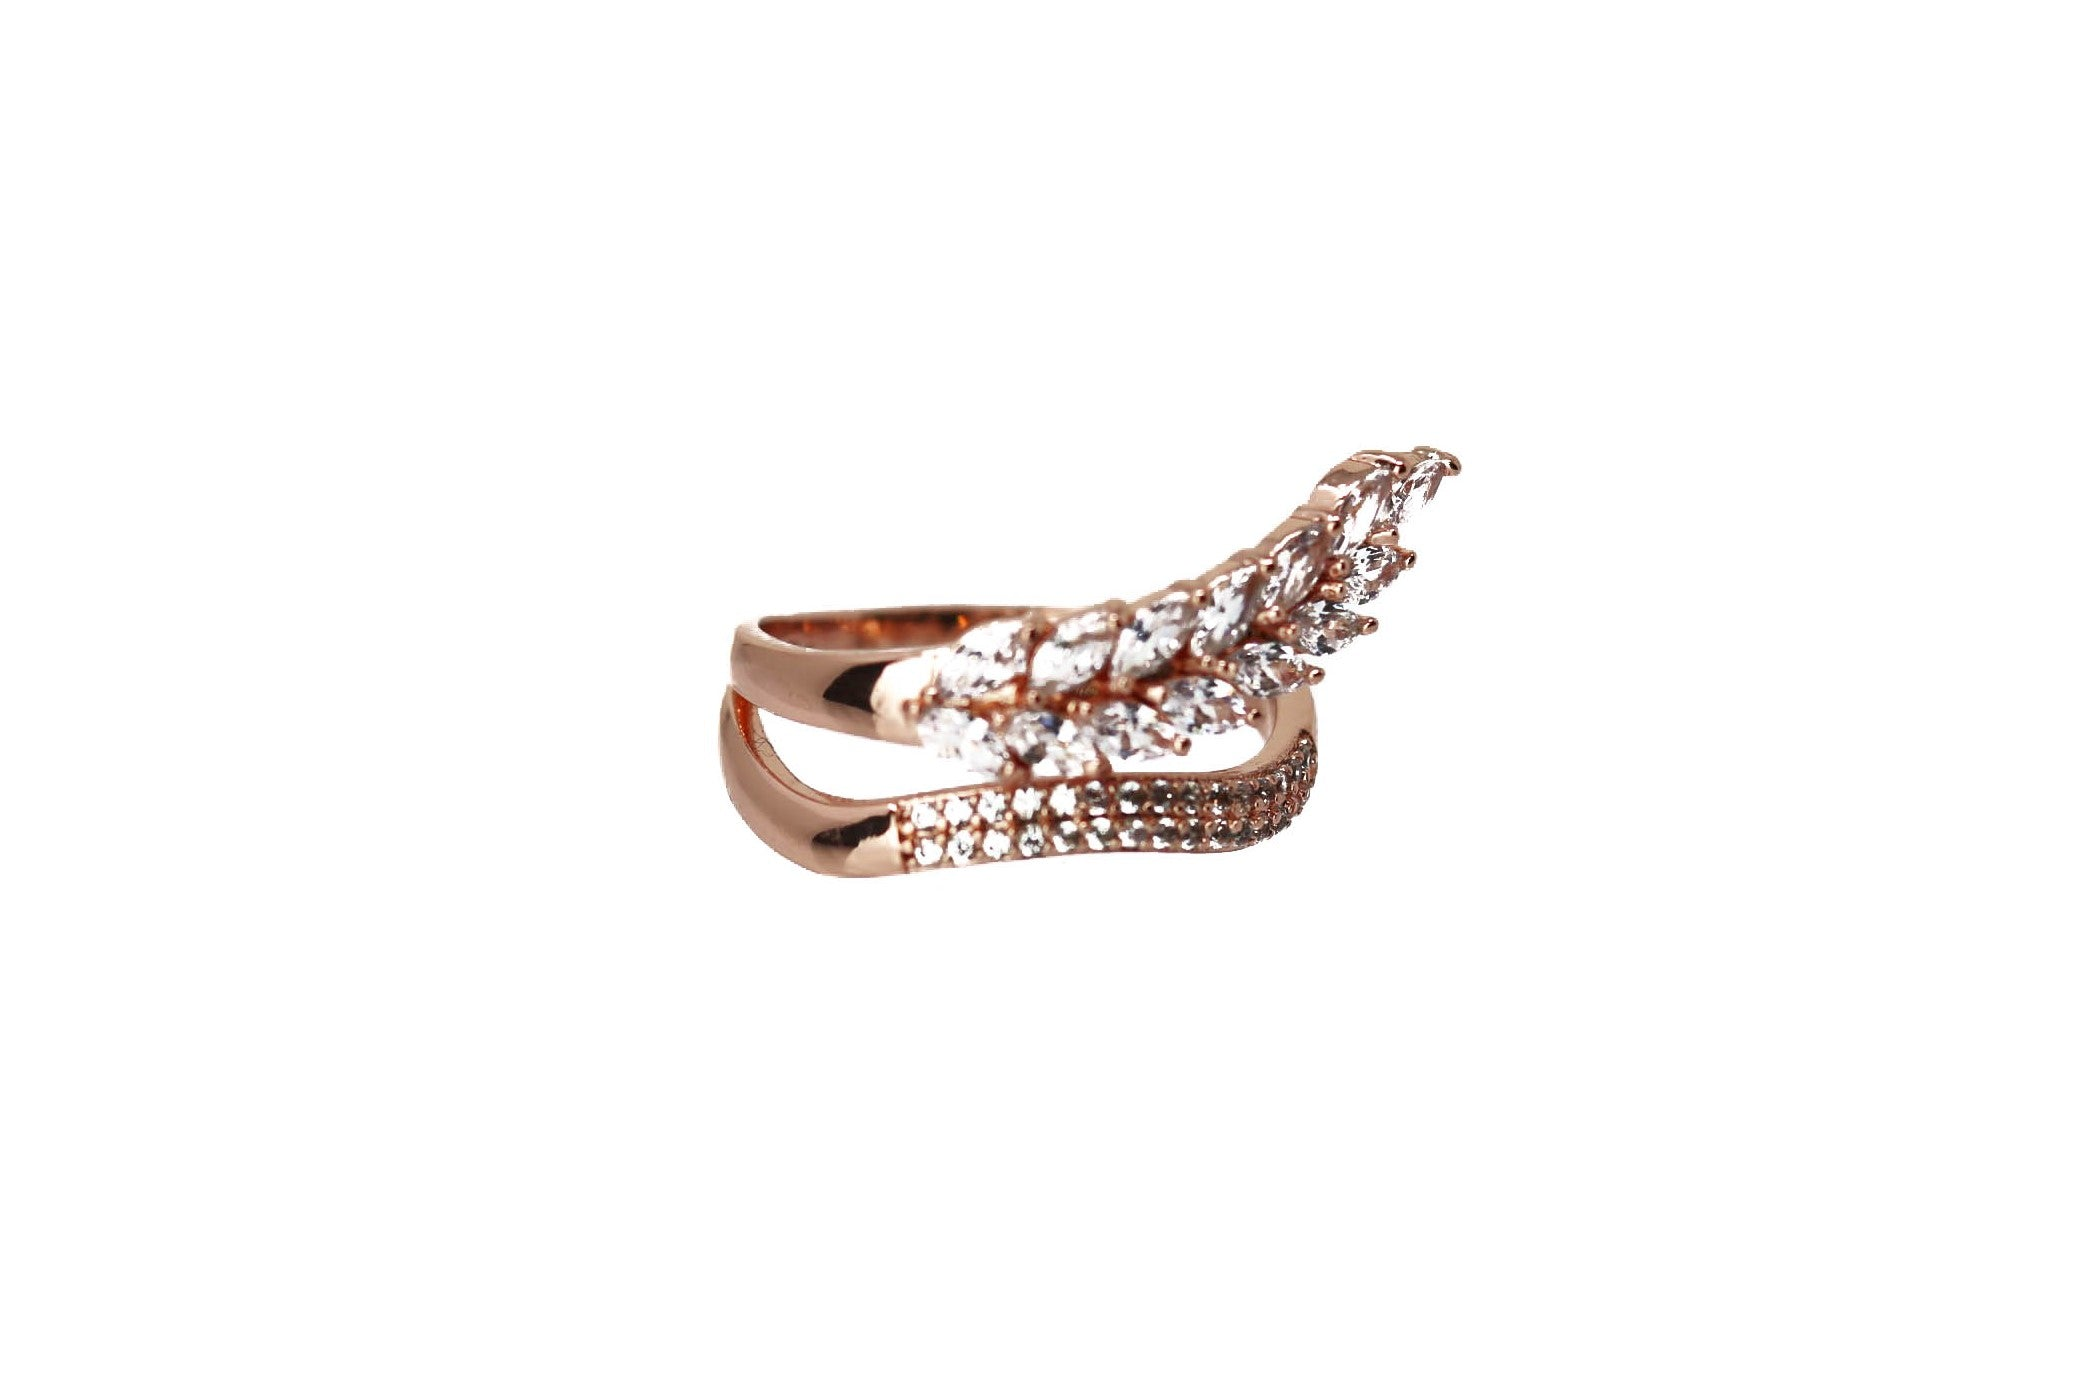 Feather Rose Rose Gold Ring with Swarovski Crystals